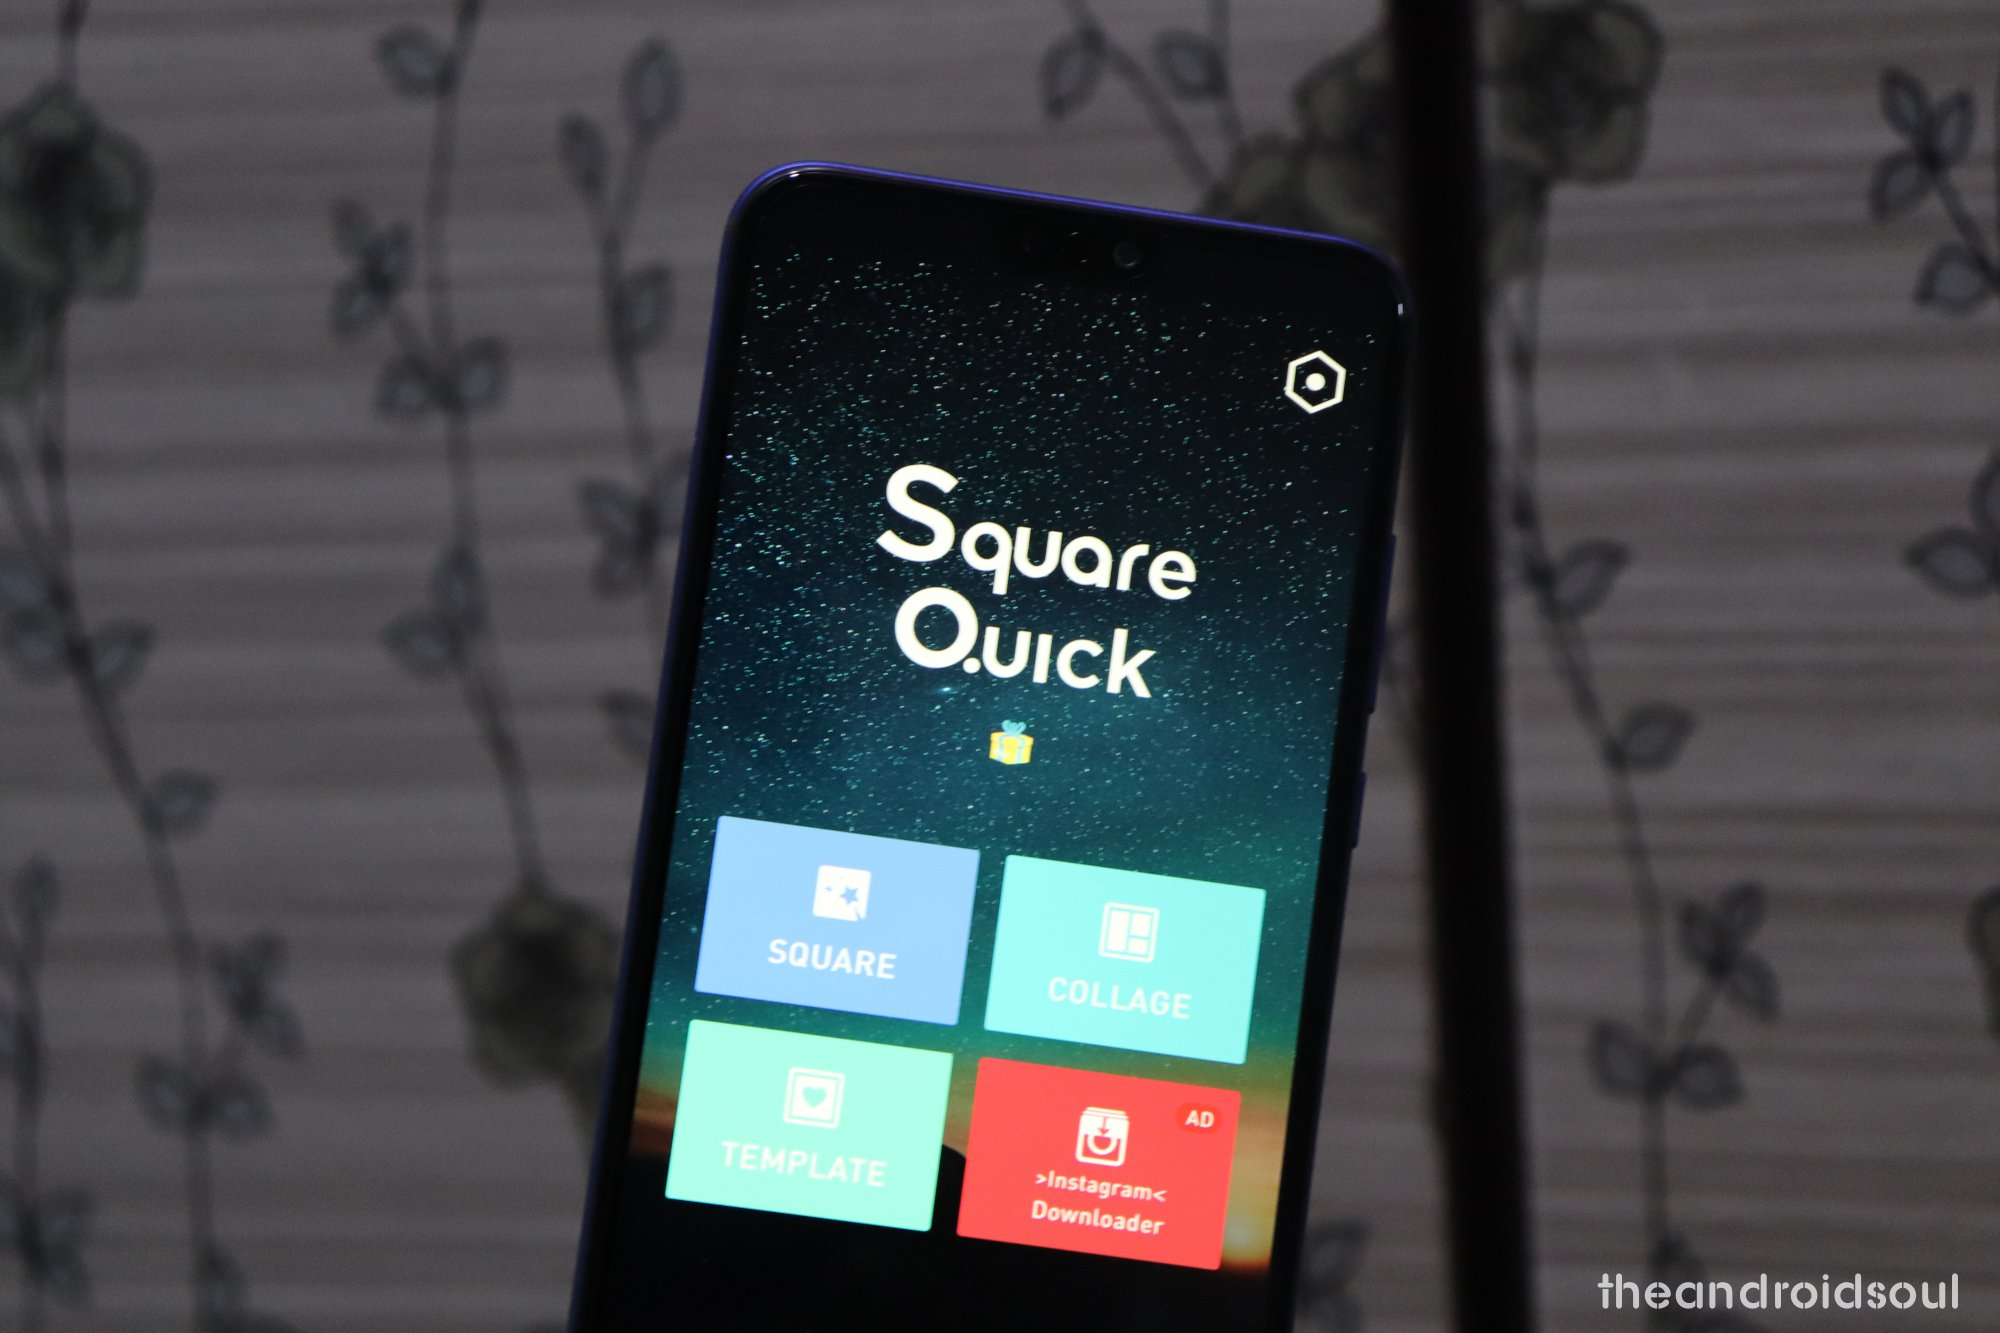 Square Quick Android App